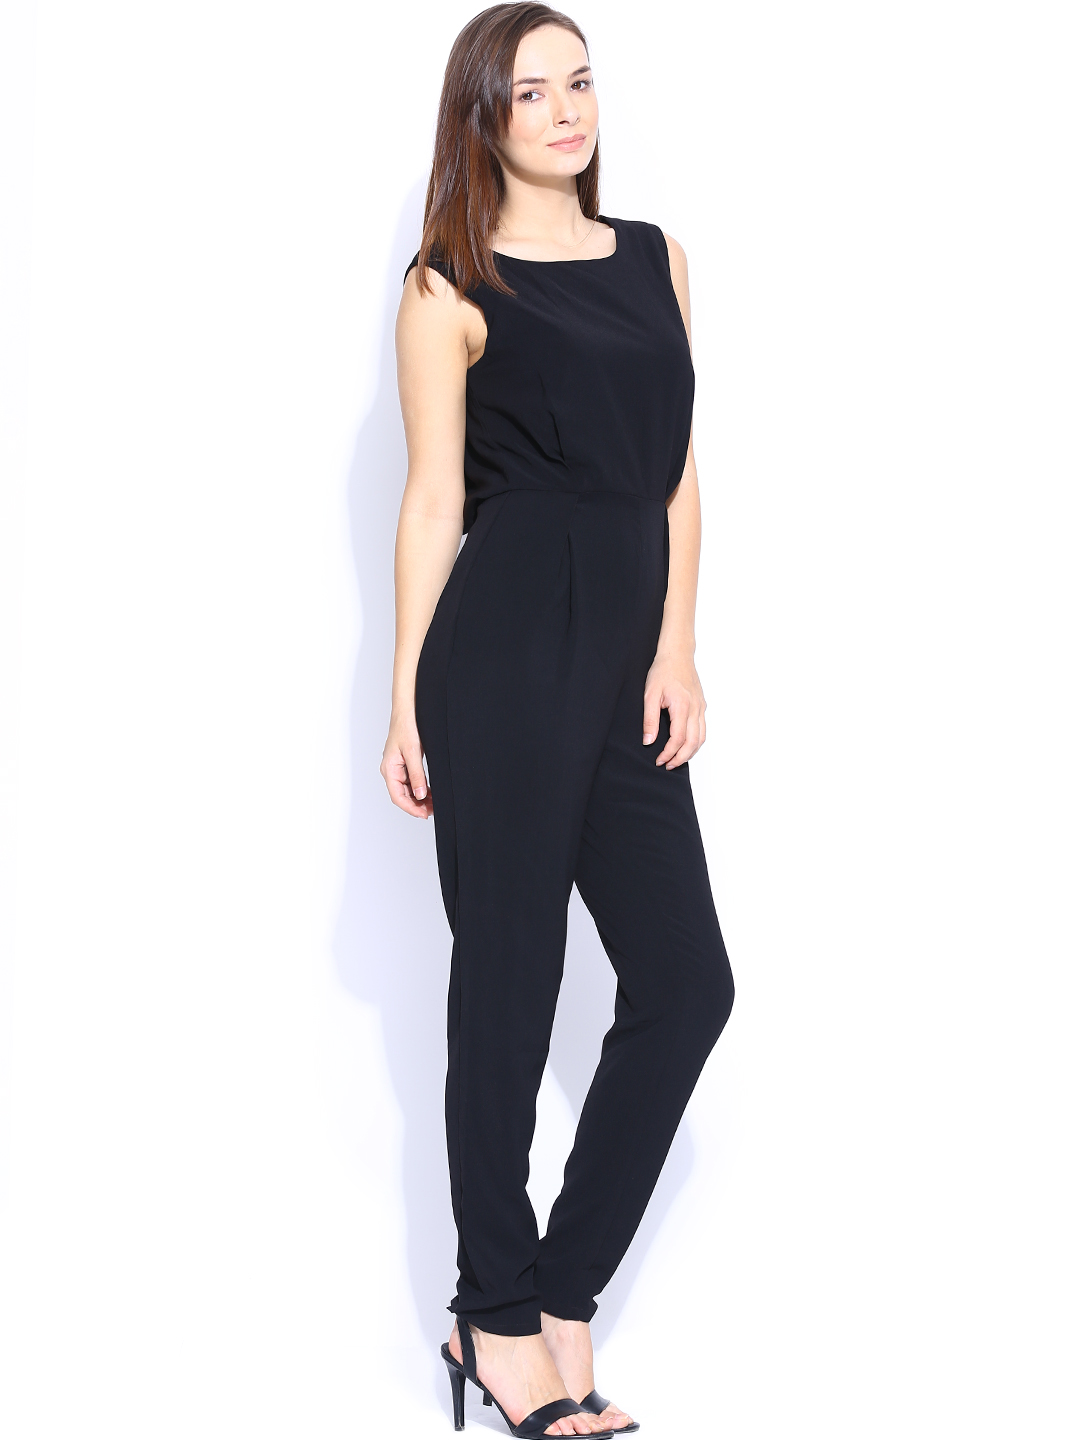 Myntra Vero Moda Black Jumpsuit 822481 | Buy Myntra Vero Moda Jumpsuit At Best Price Online. All ...